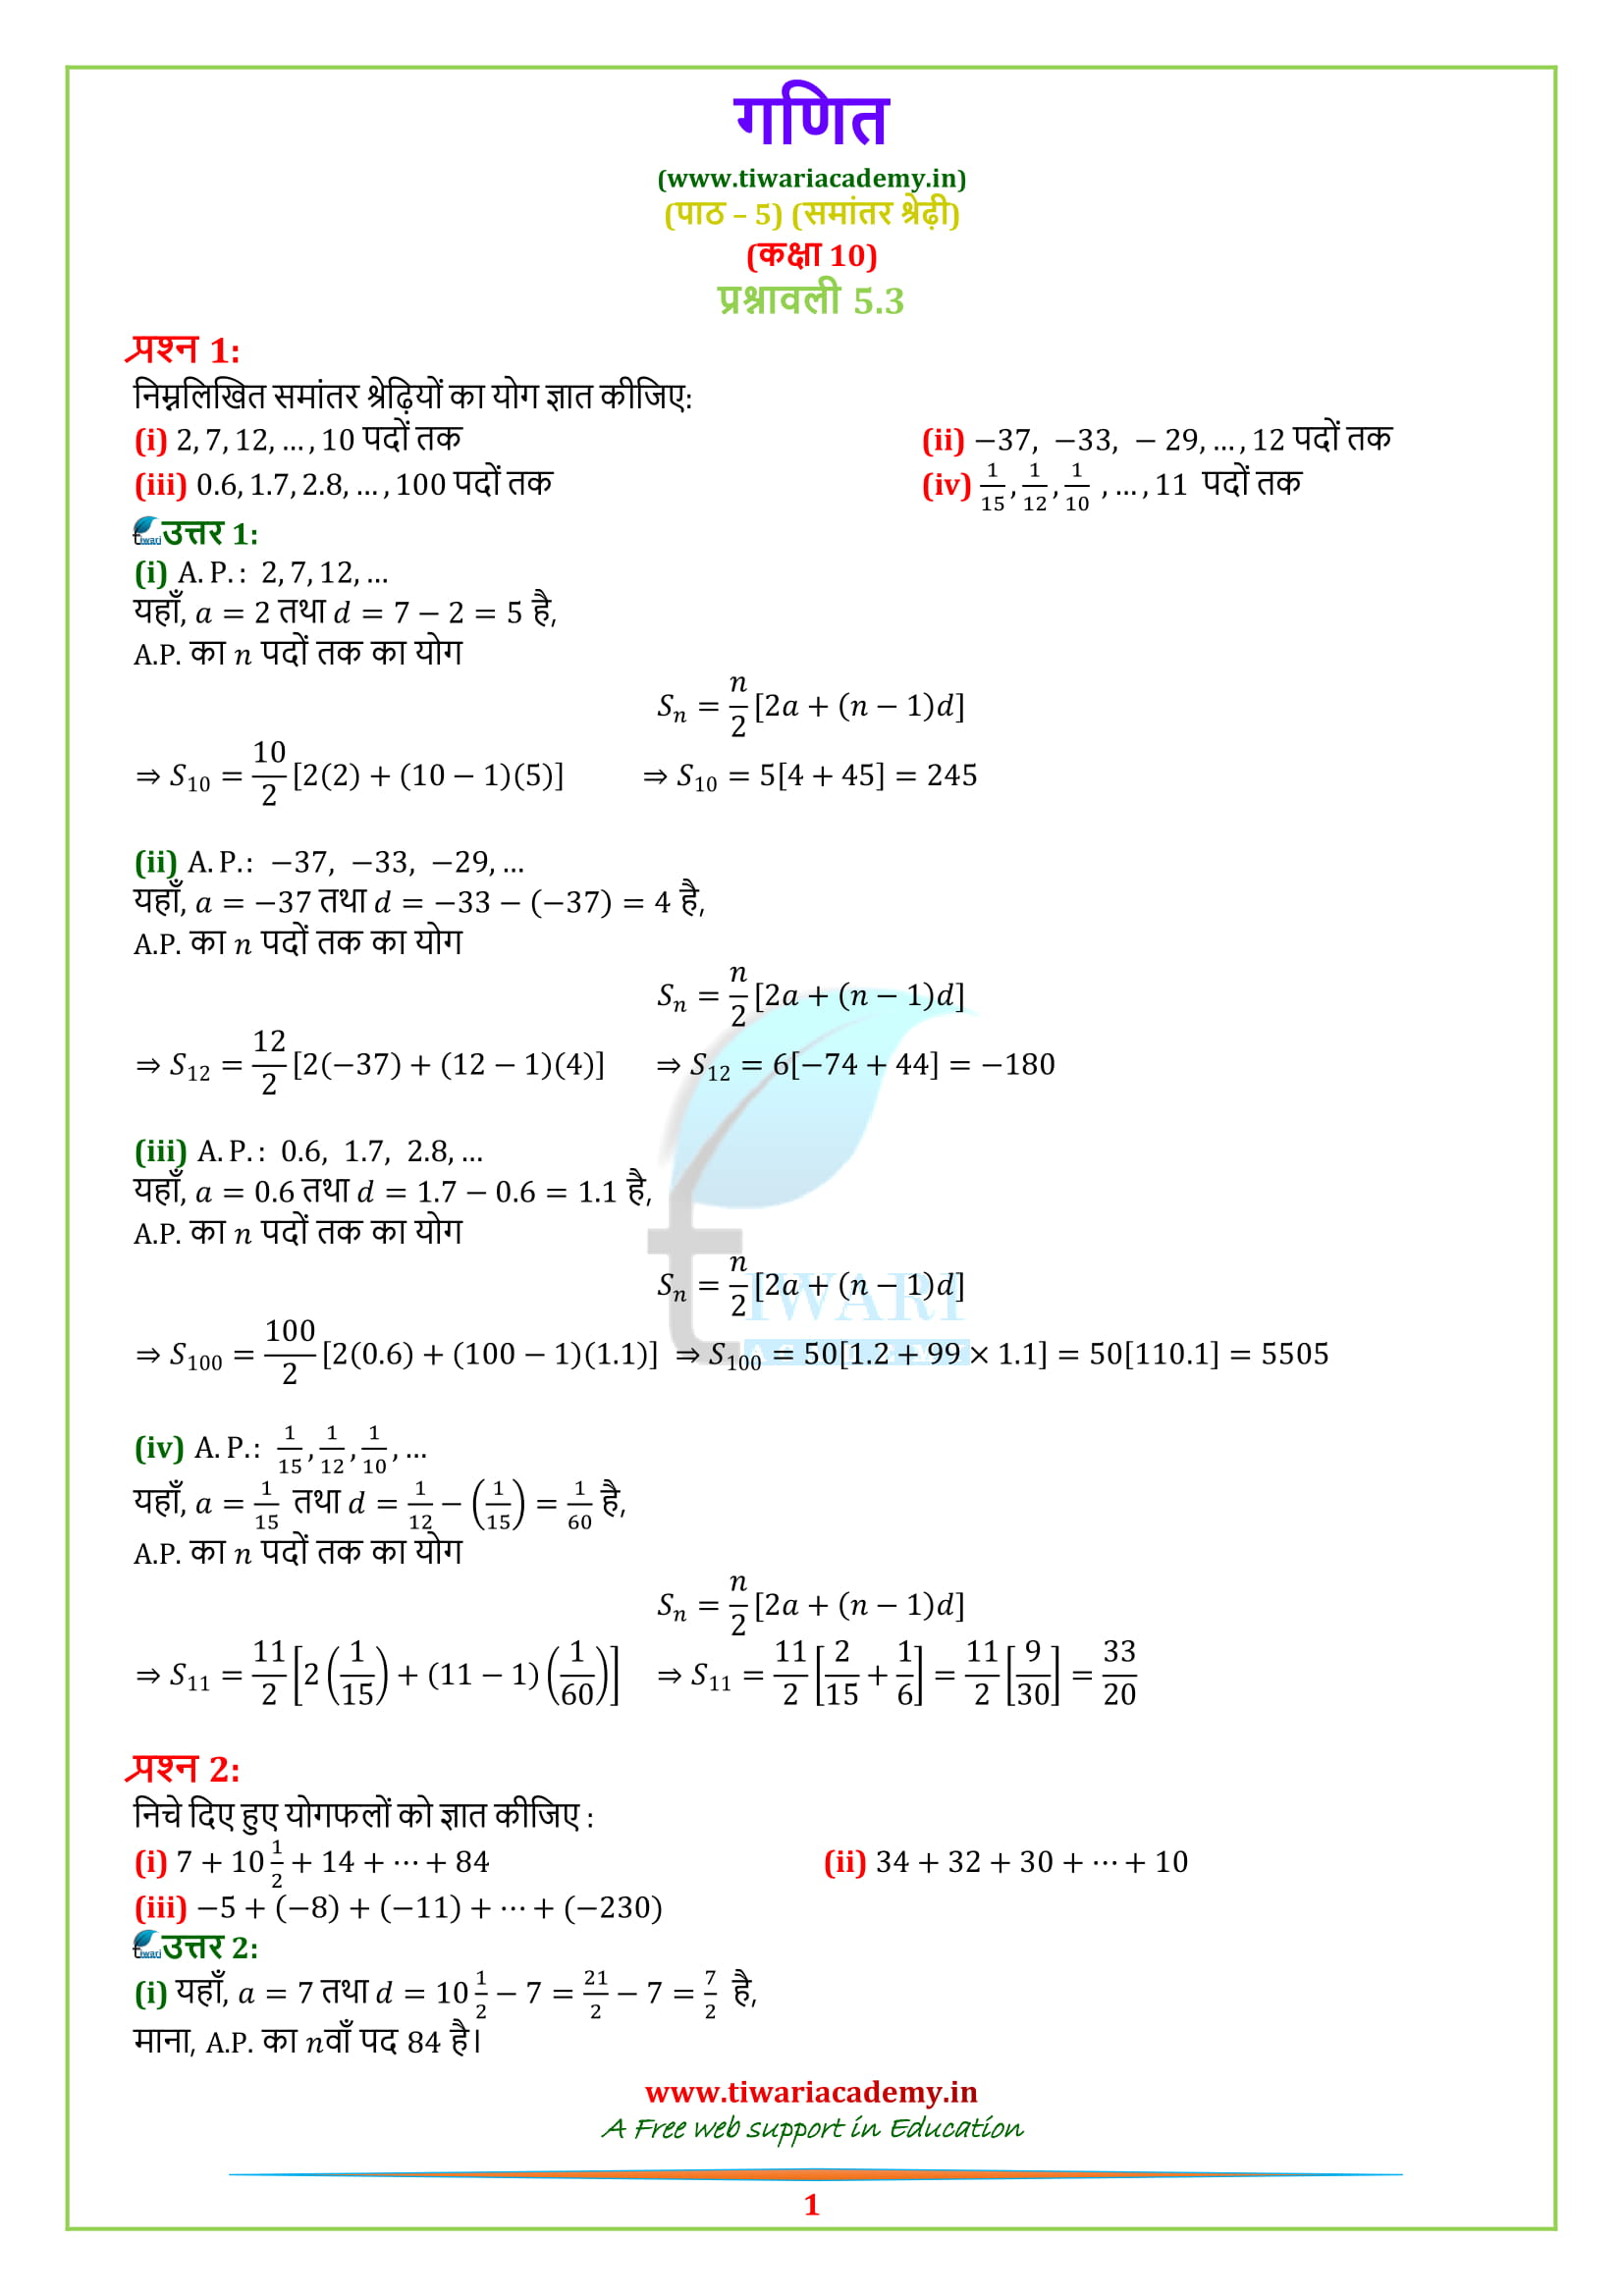 NCERT Solutions for Class 10 Maths Exercise 5.3 in Hindi